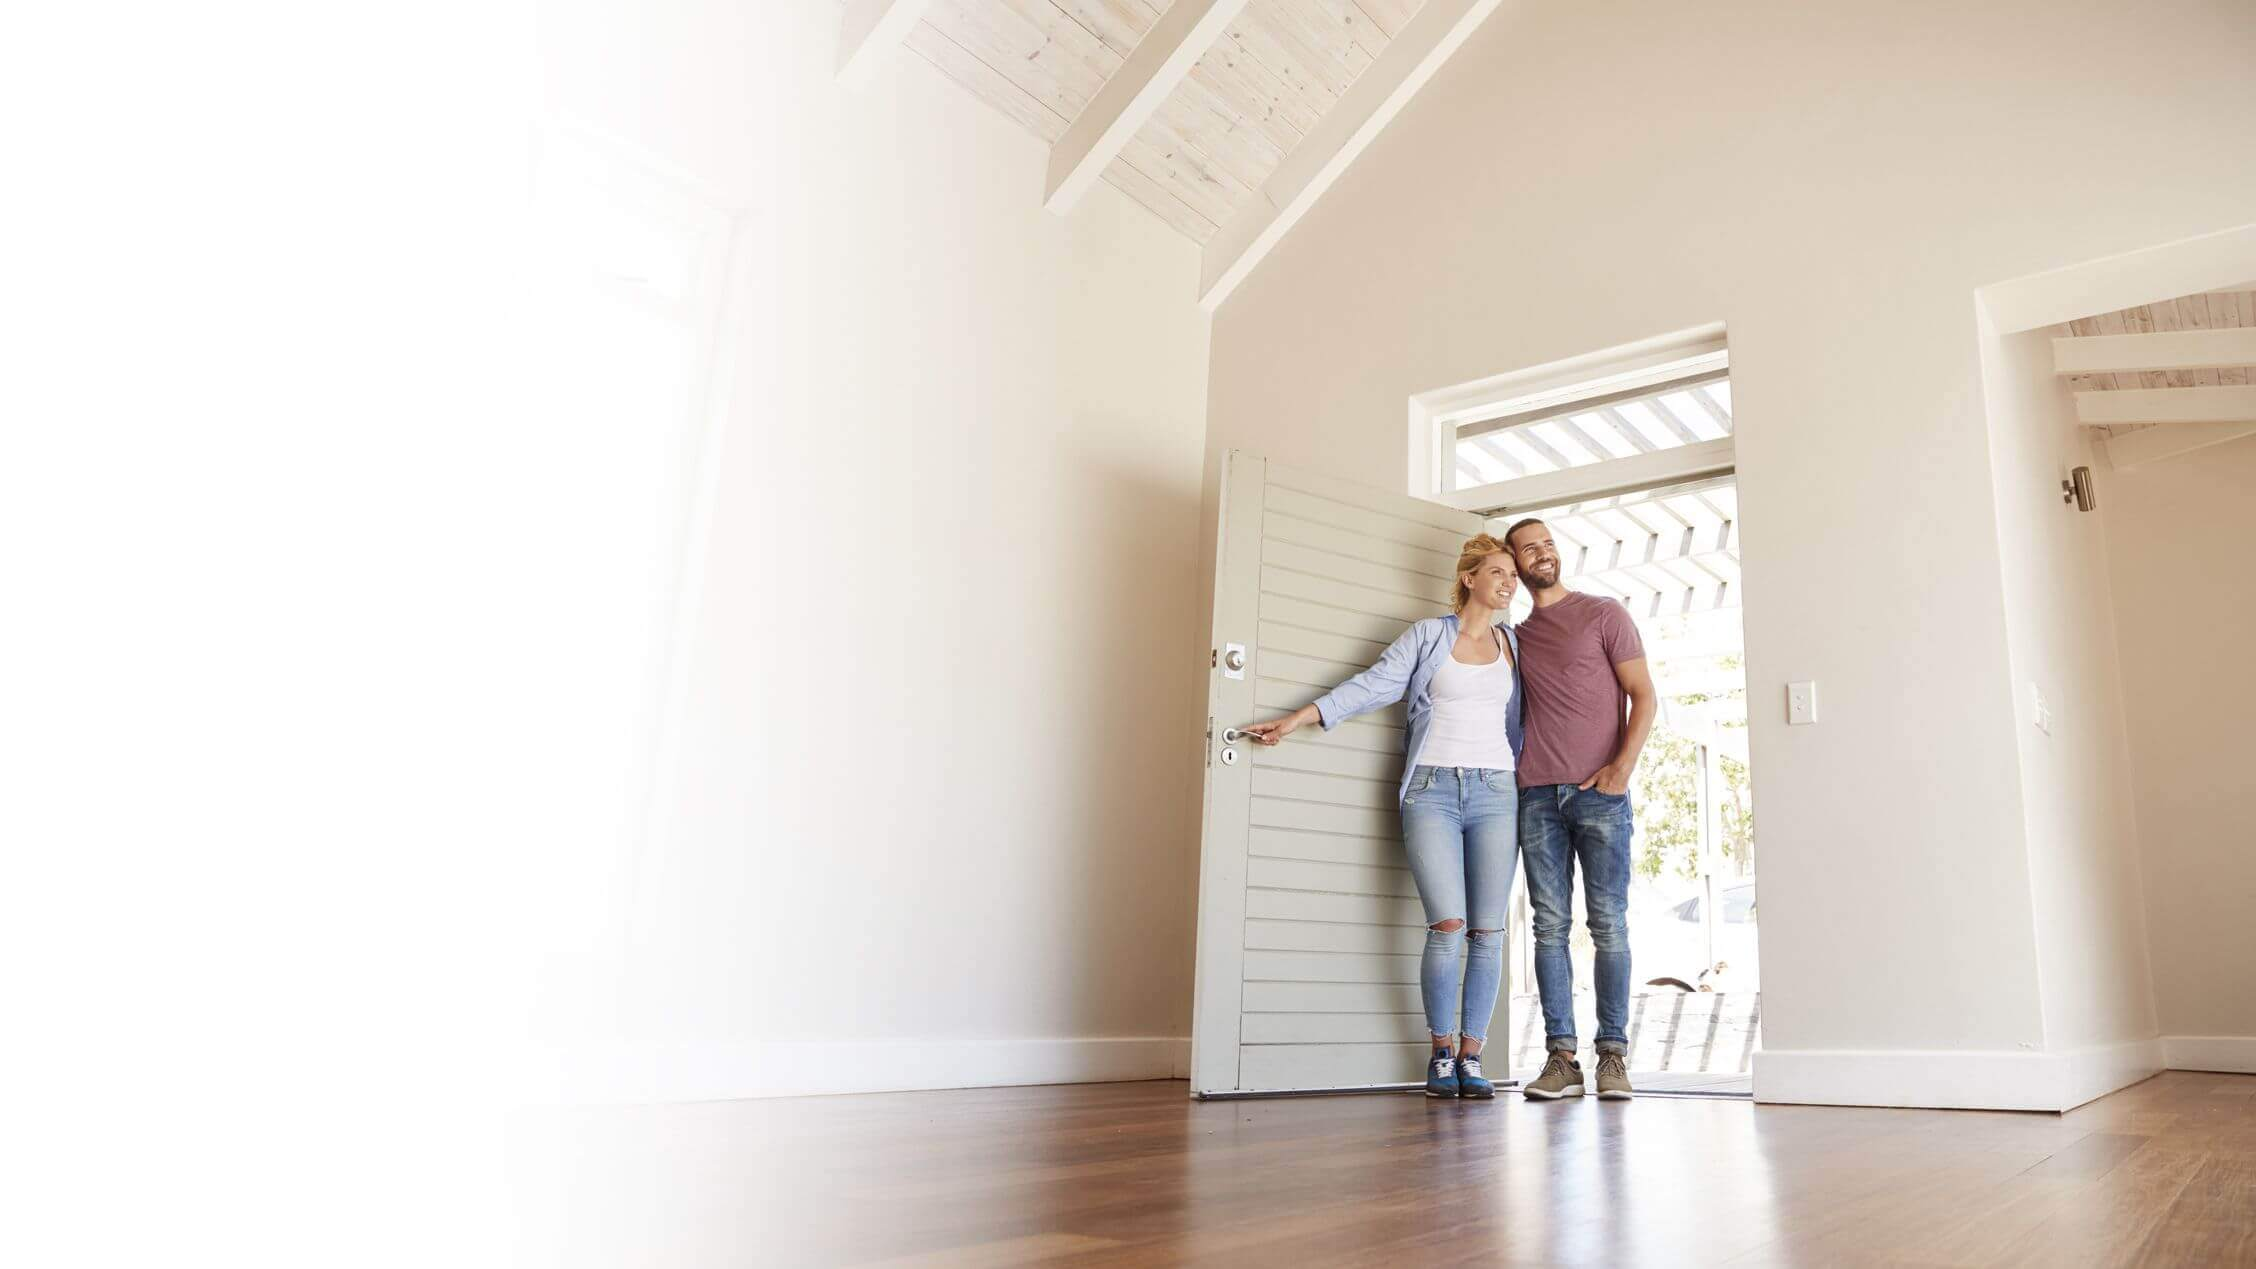 Banner image of couple at entry of home with lady opening the front door and couple smiling and looking inside